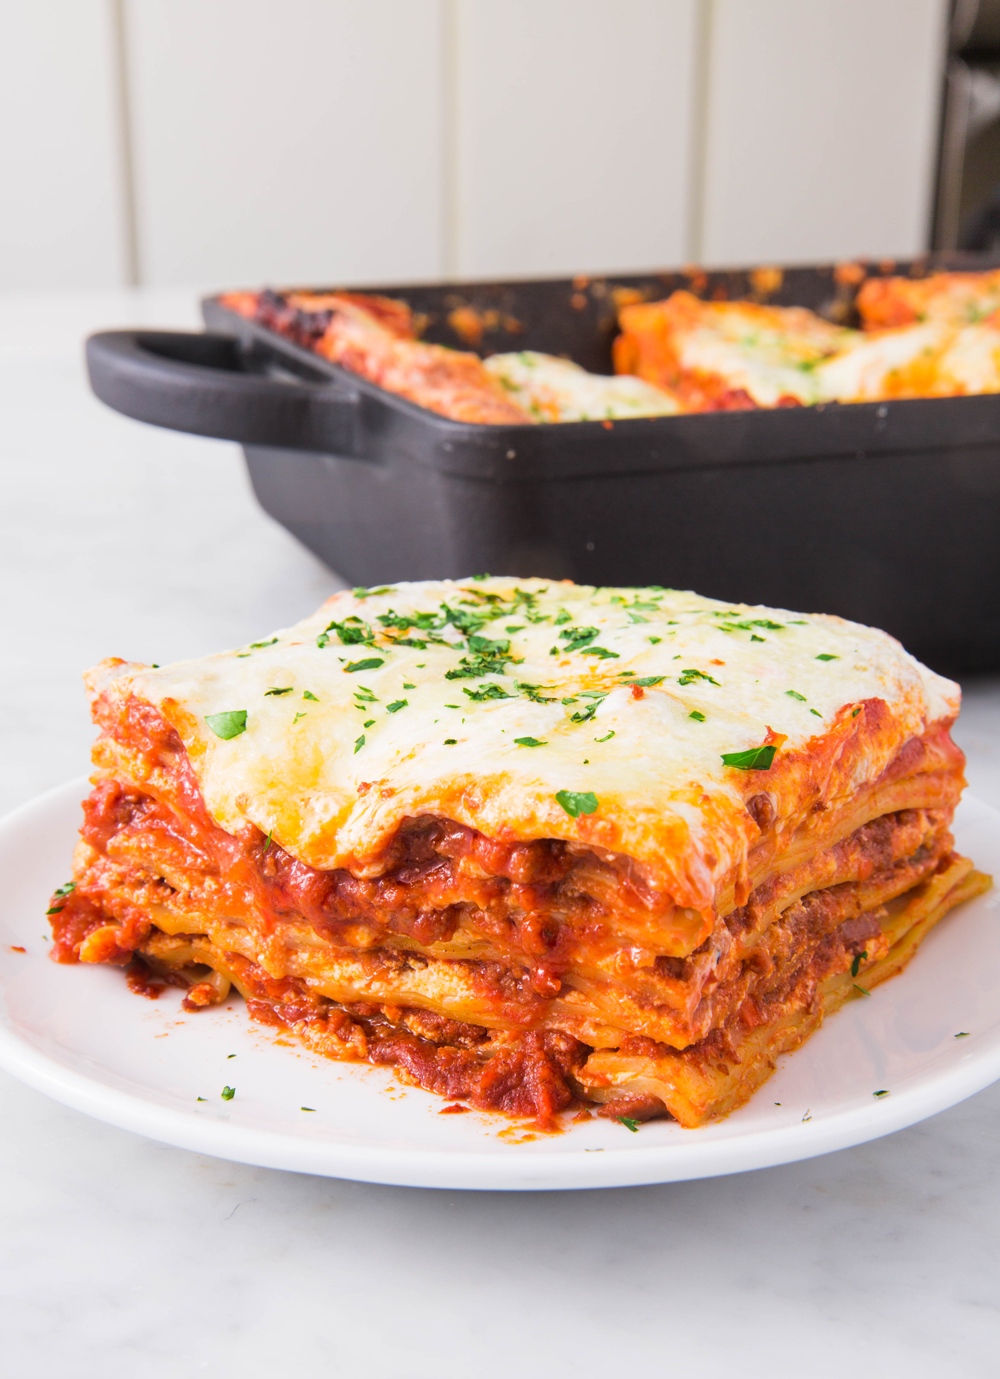 """<p>Layers upon layers of delicious bolognese. </p><p>Get the recipe from <a href=""""https://www.delish.com/cooking/recipe-ideas/a24684549/lasagna-bolognese-recipe/"""" rel=""""nofollow noopener"""" target=""""_blank"""" data-ylk=""""slk:Delish"""" class=""""link rapid-noclick-resp"""">Delish</a>. </p>"""